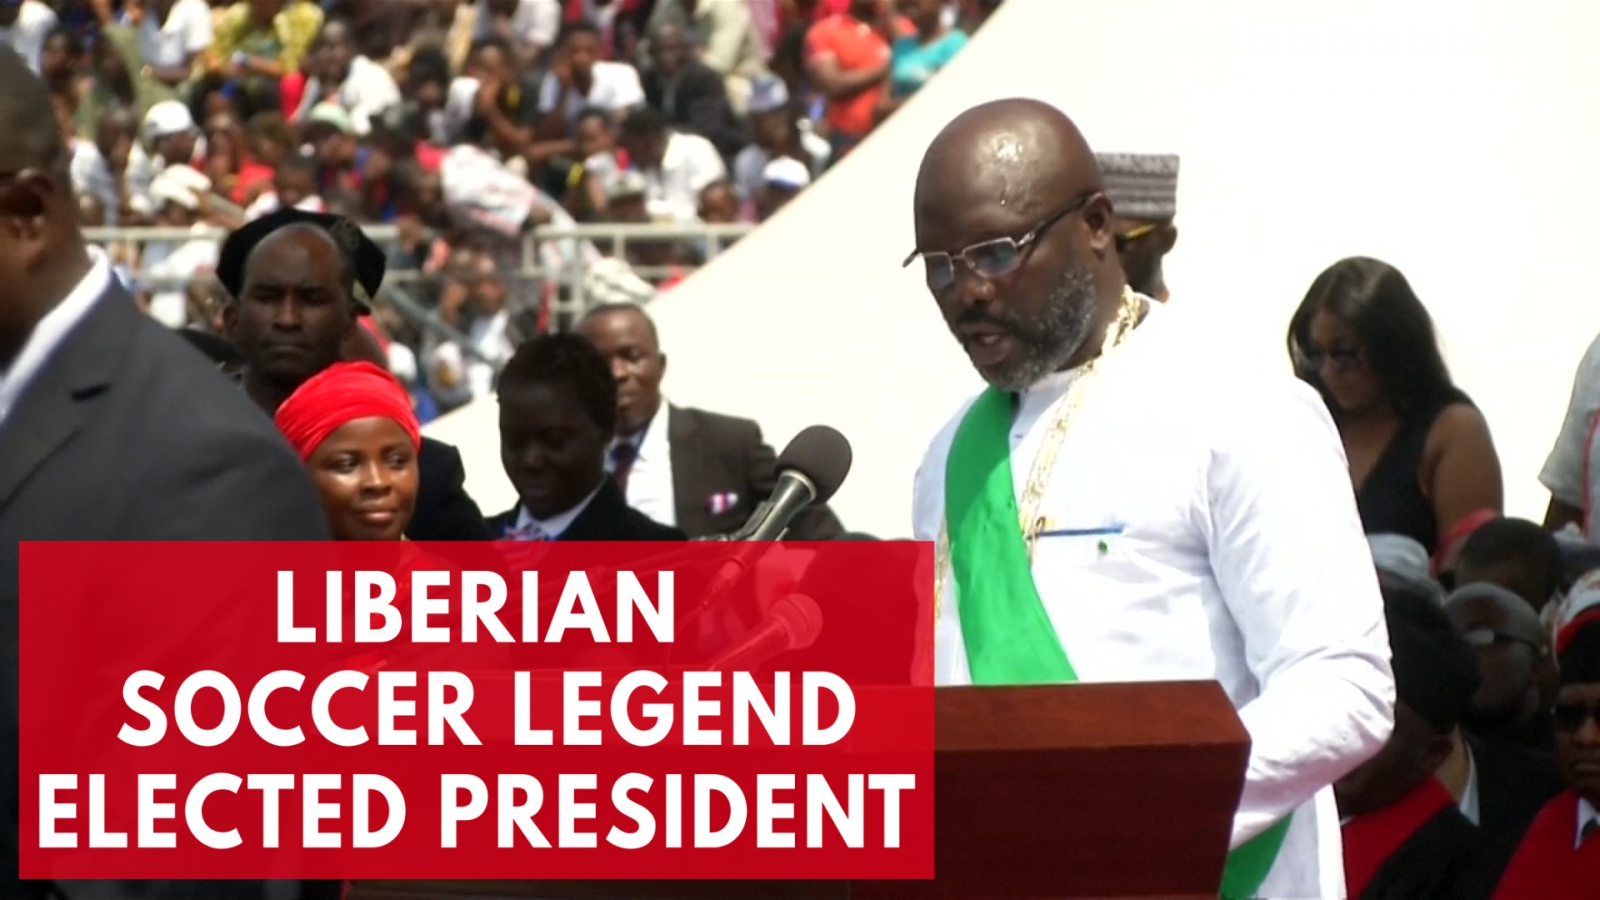 former-soccer-legend-george-weah-elected-as-25th-president-of-liberia